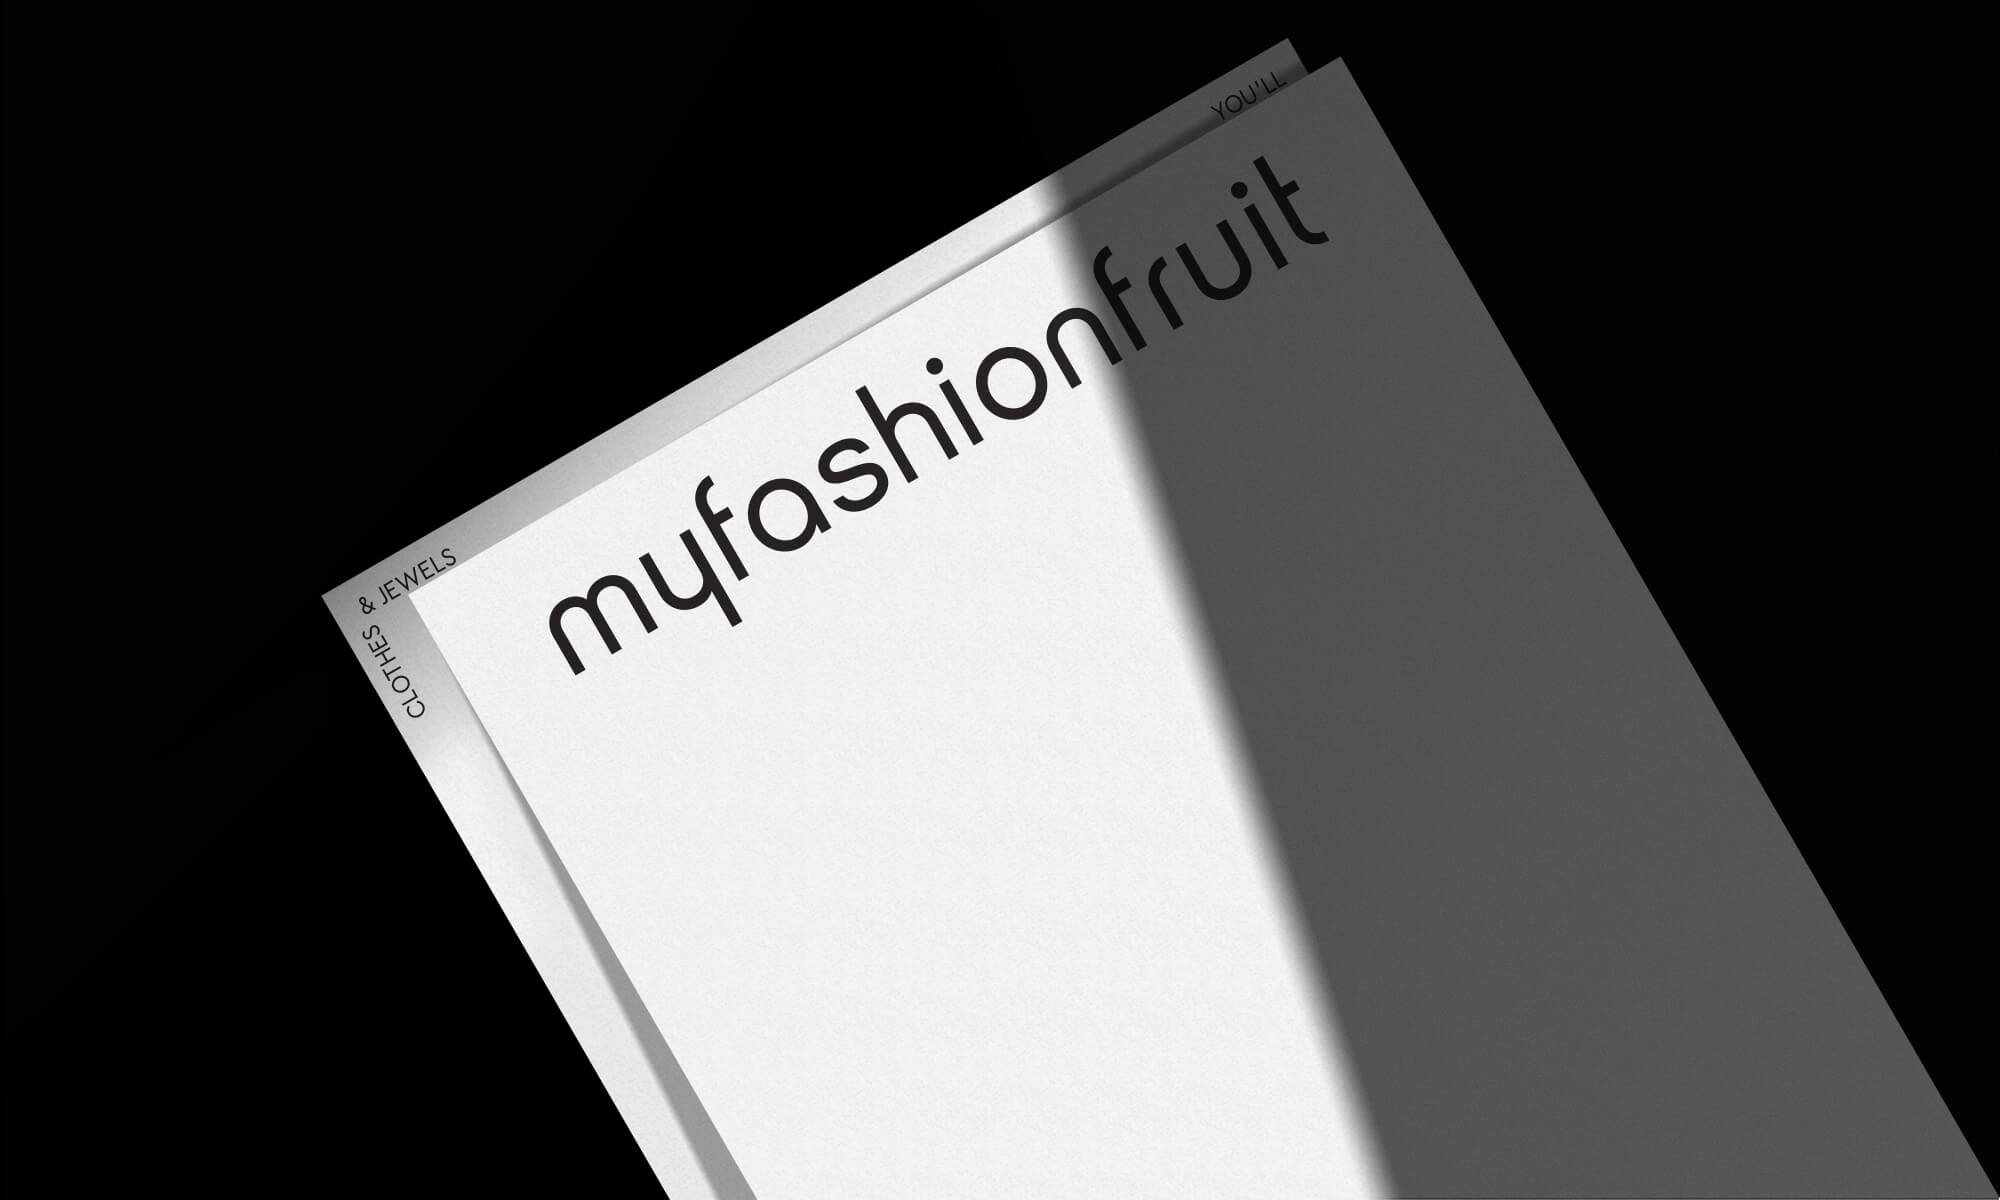 mff_letterheads_with shadowsArtboard 1 copy 16